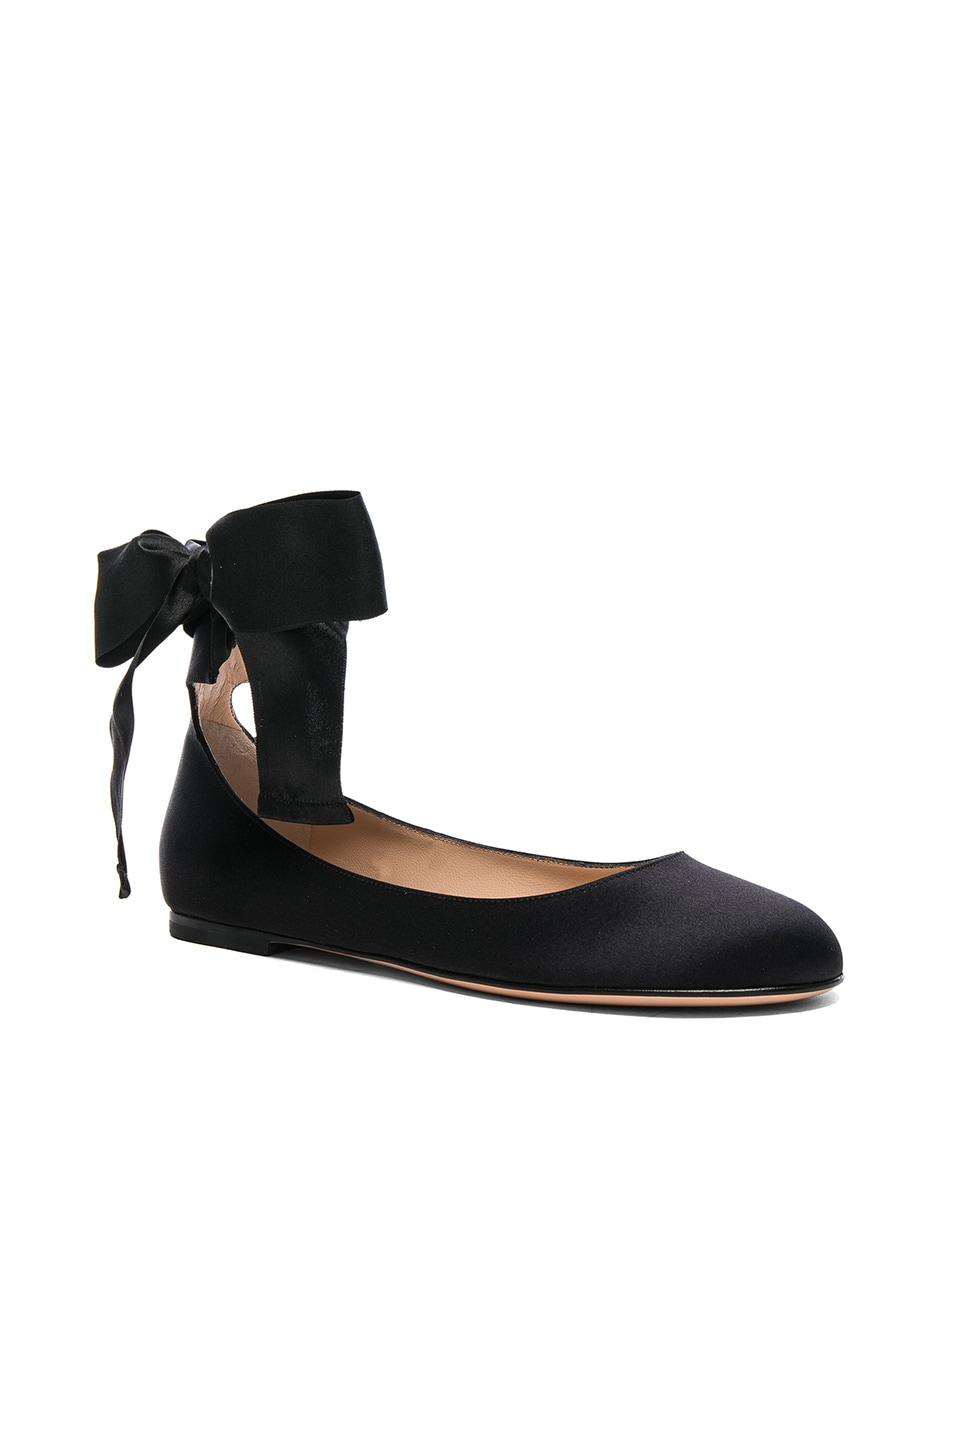 Image 2 of Gianvito Rossi Satin Ankle Tie Flats in Black